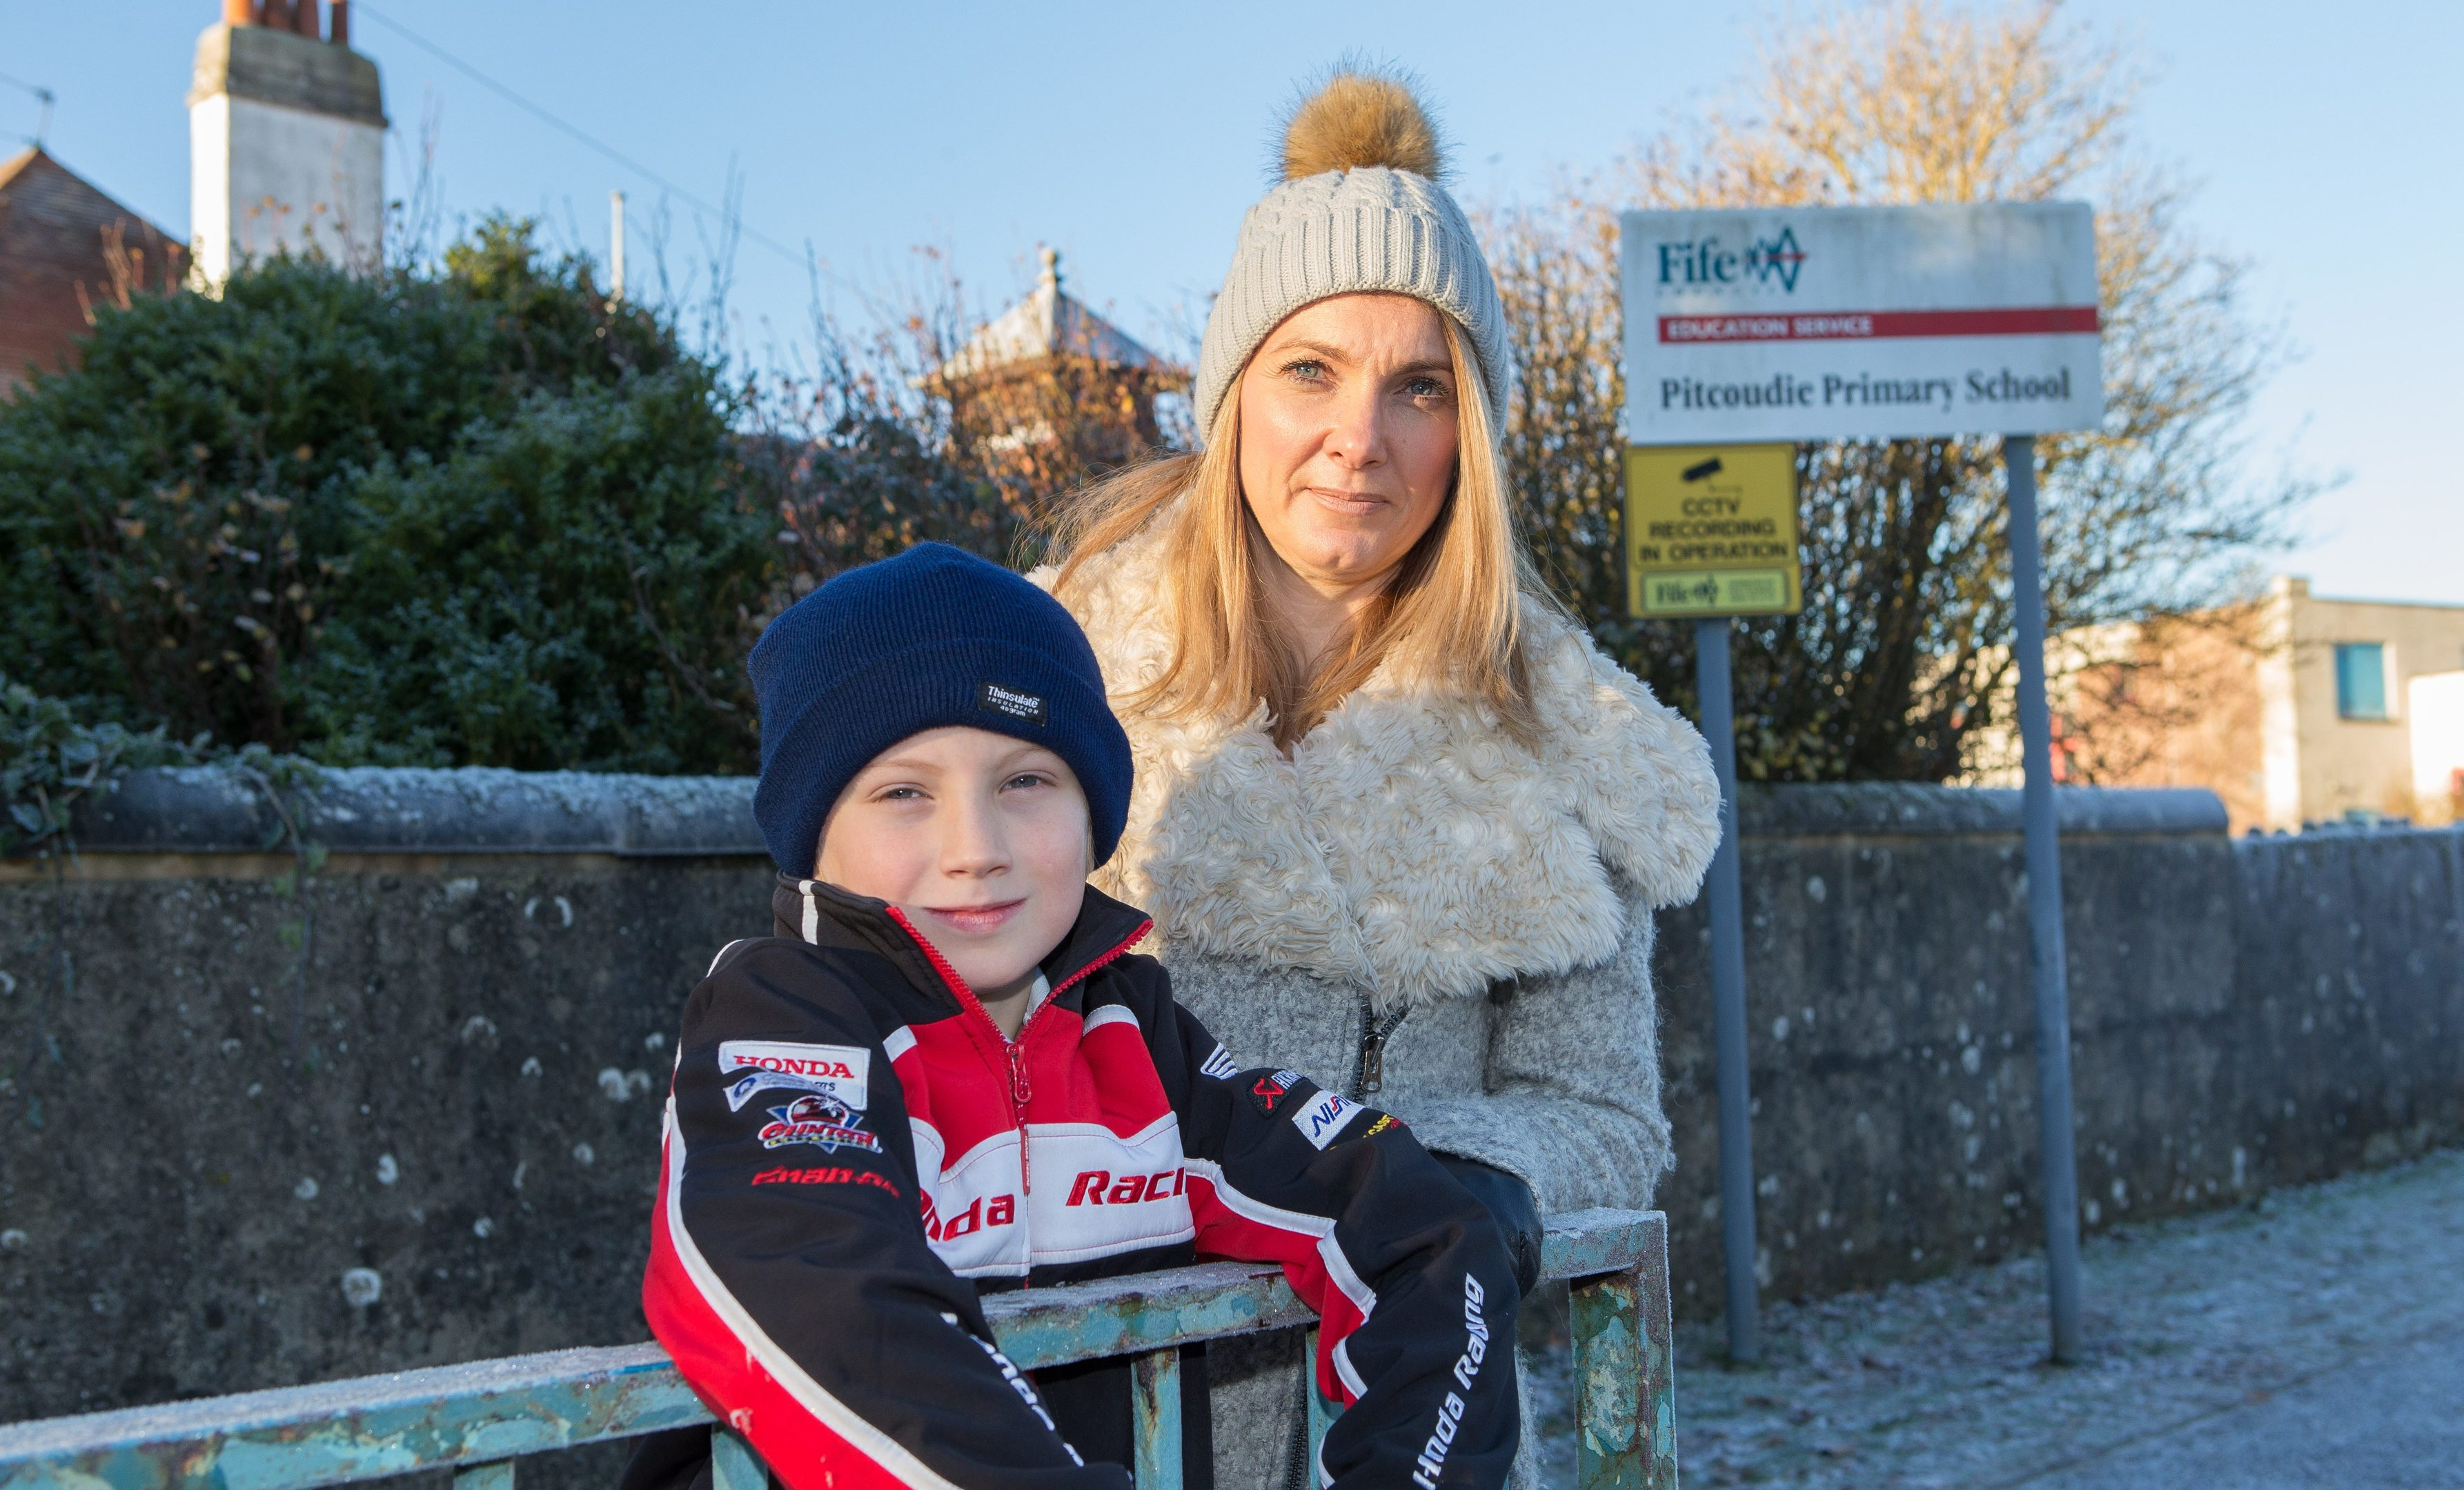 Alison McIntyre and her son Ronnie are among those concerned at recent incidents of vandalism and theft at Pitcoudie Primary.